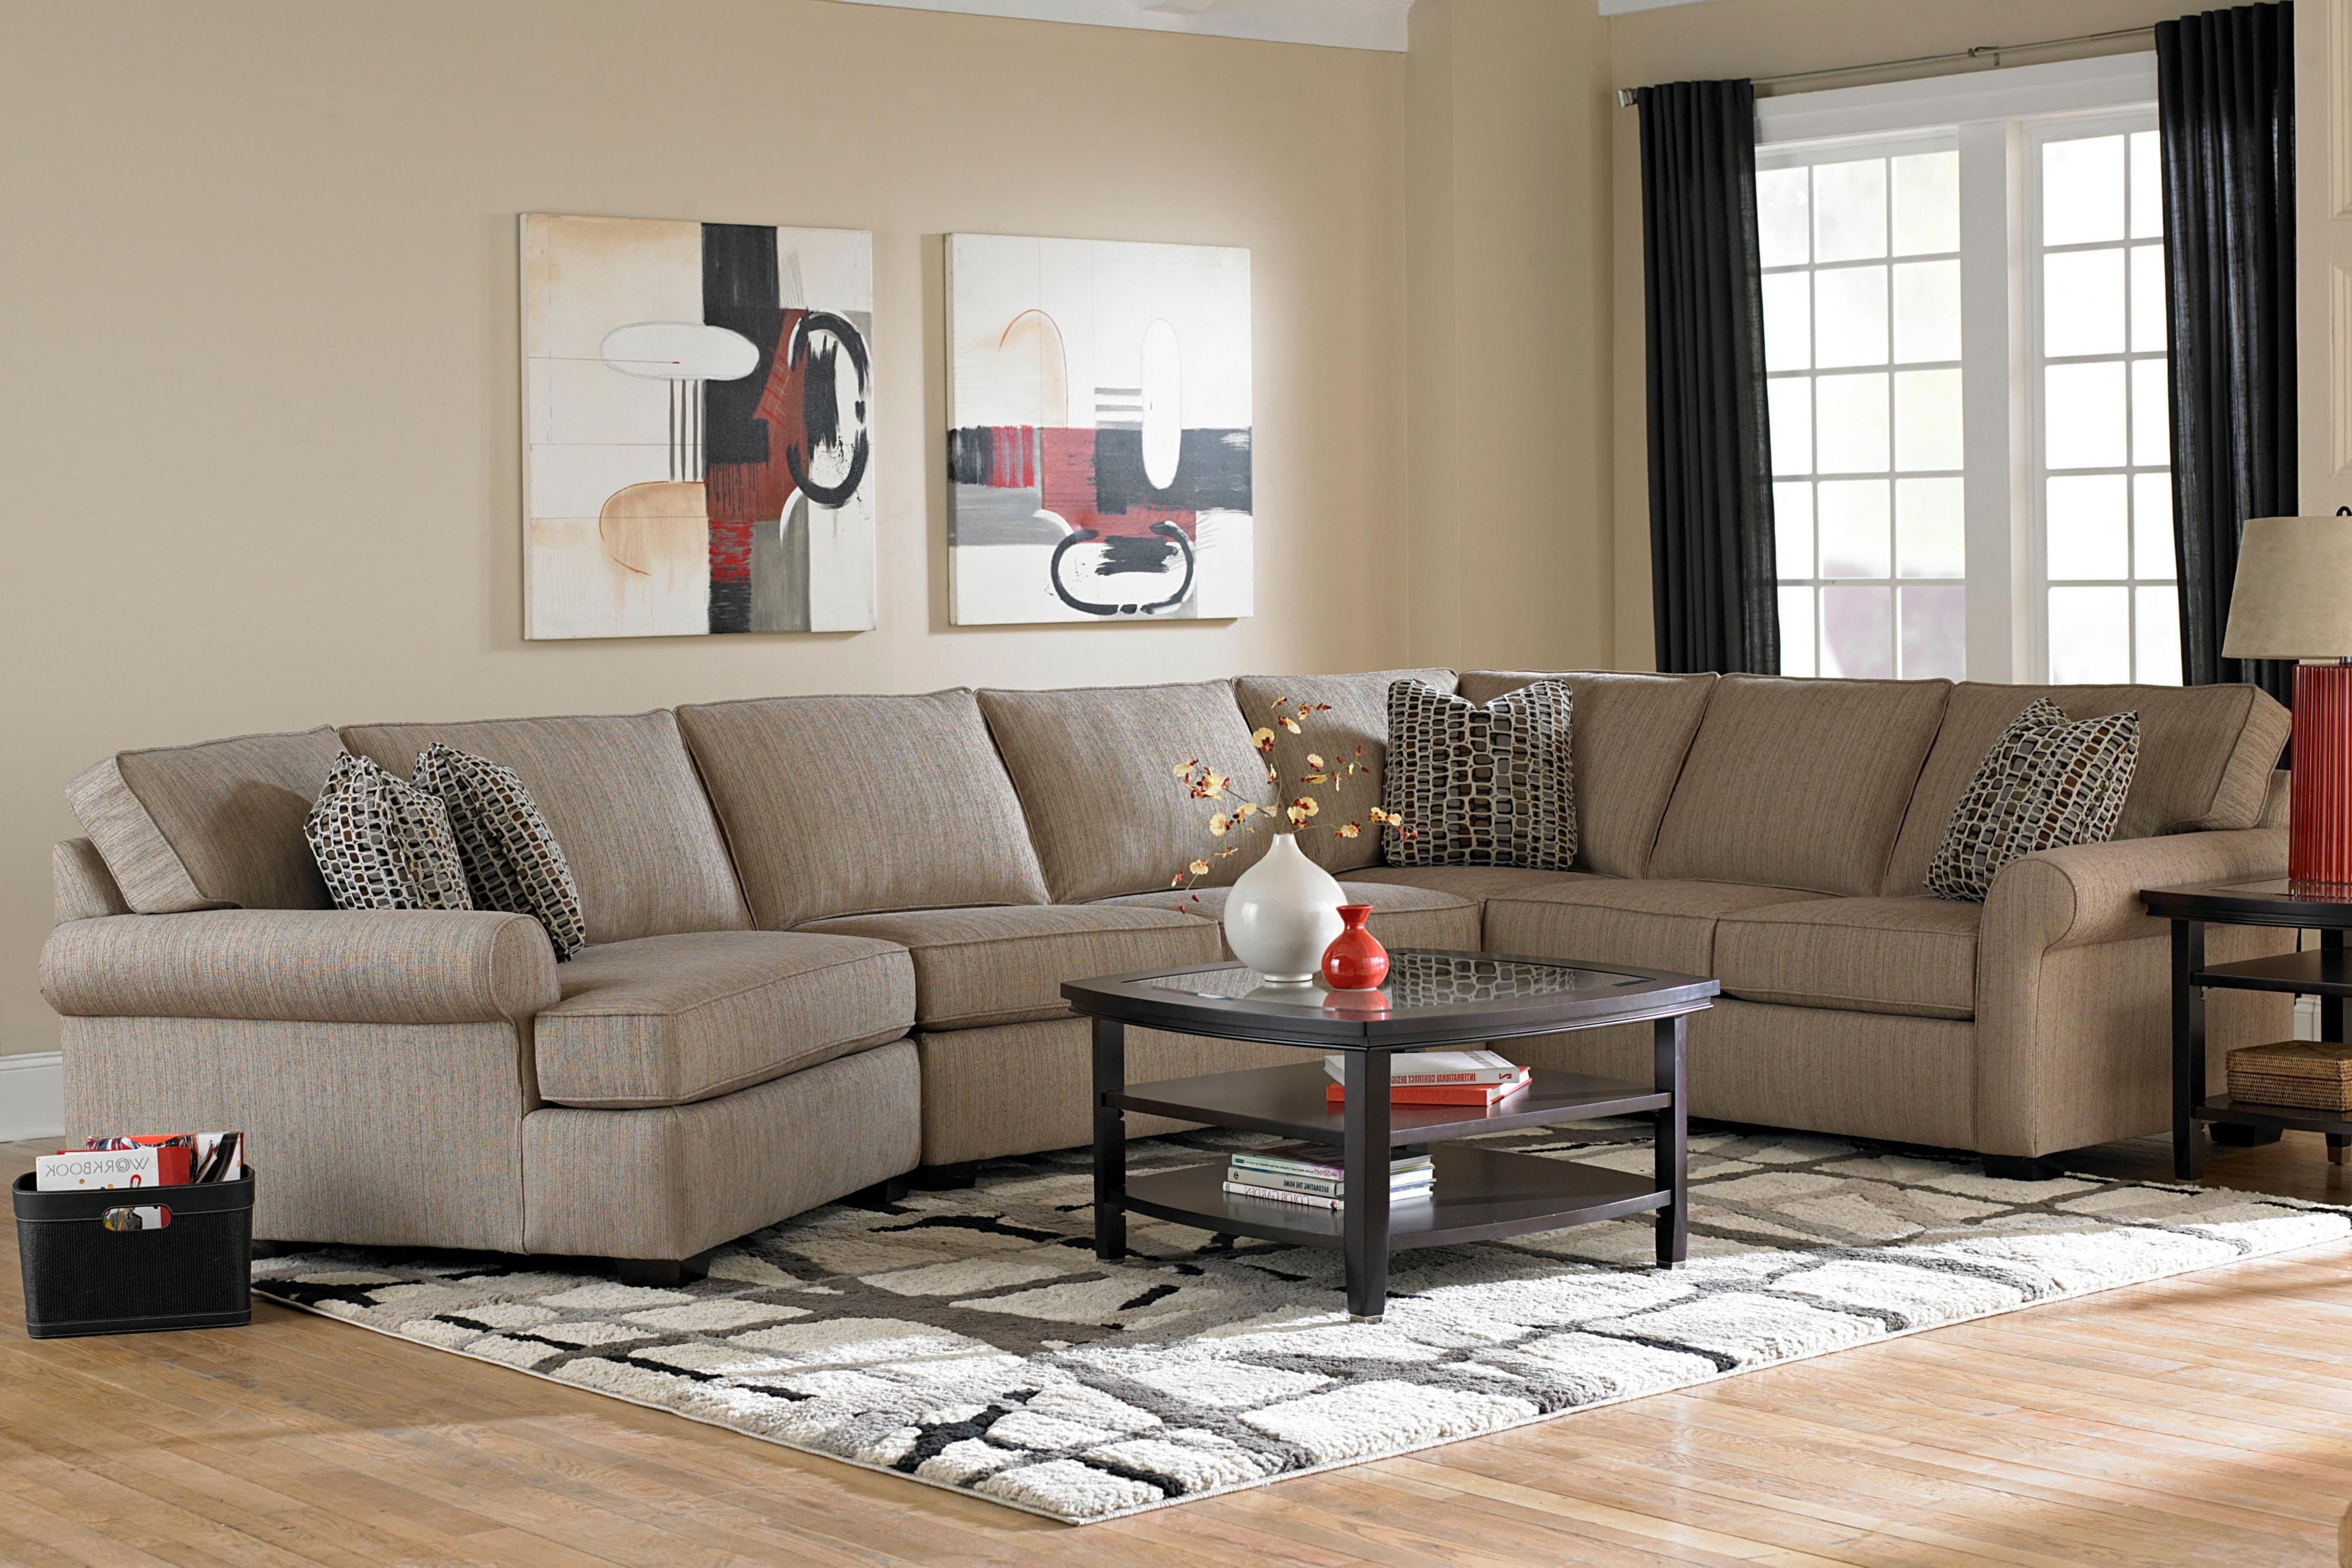 Broyhill Furniture Ethan Transitional Sectional Sofa With Left throughout Aurora 2 Piece Sectionals (Image 13 of 30)